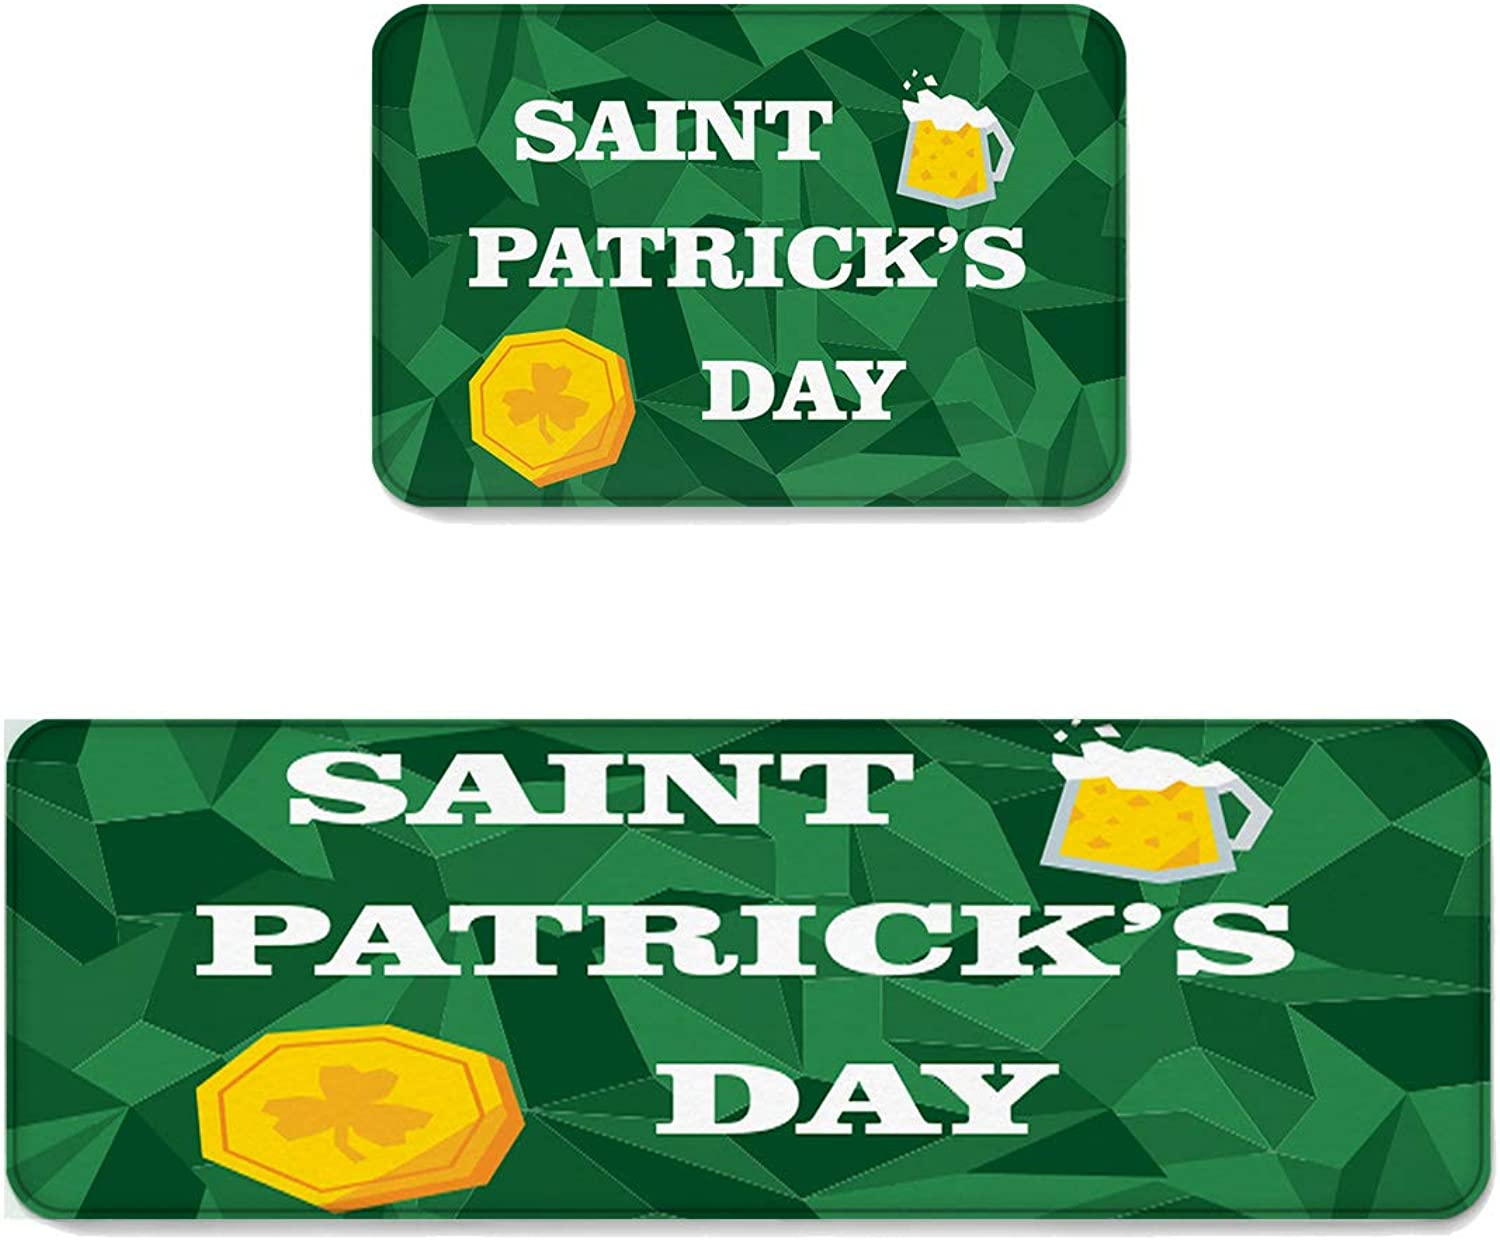 Kitchen Rug Sets 2 Piece Floor Mats Non-Slip Rubber Backing Area Rugs St Patrick's Day Beer and Geometric Pattern Doormat Washable Carpet Inside Door Mat Pad Sets (19.7  x 31.5 +19.7  x 63 )